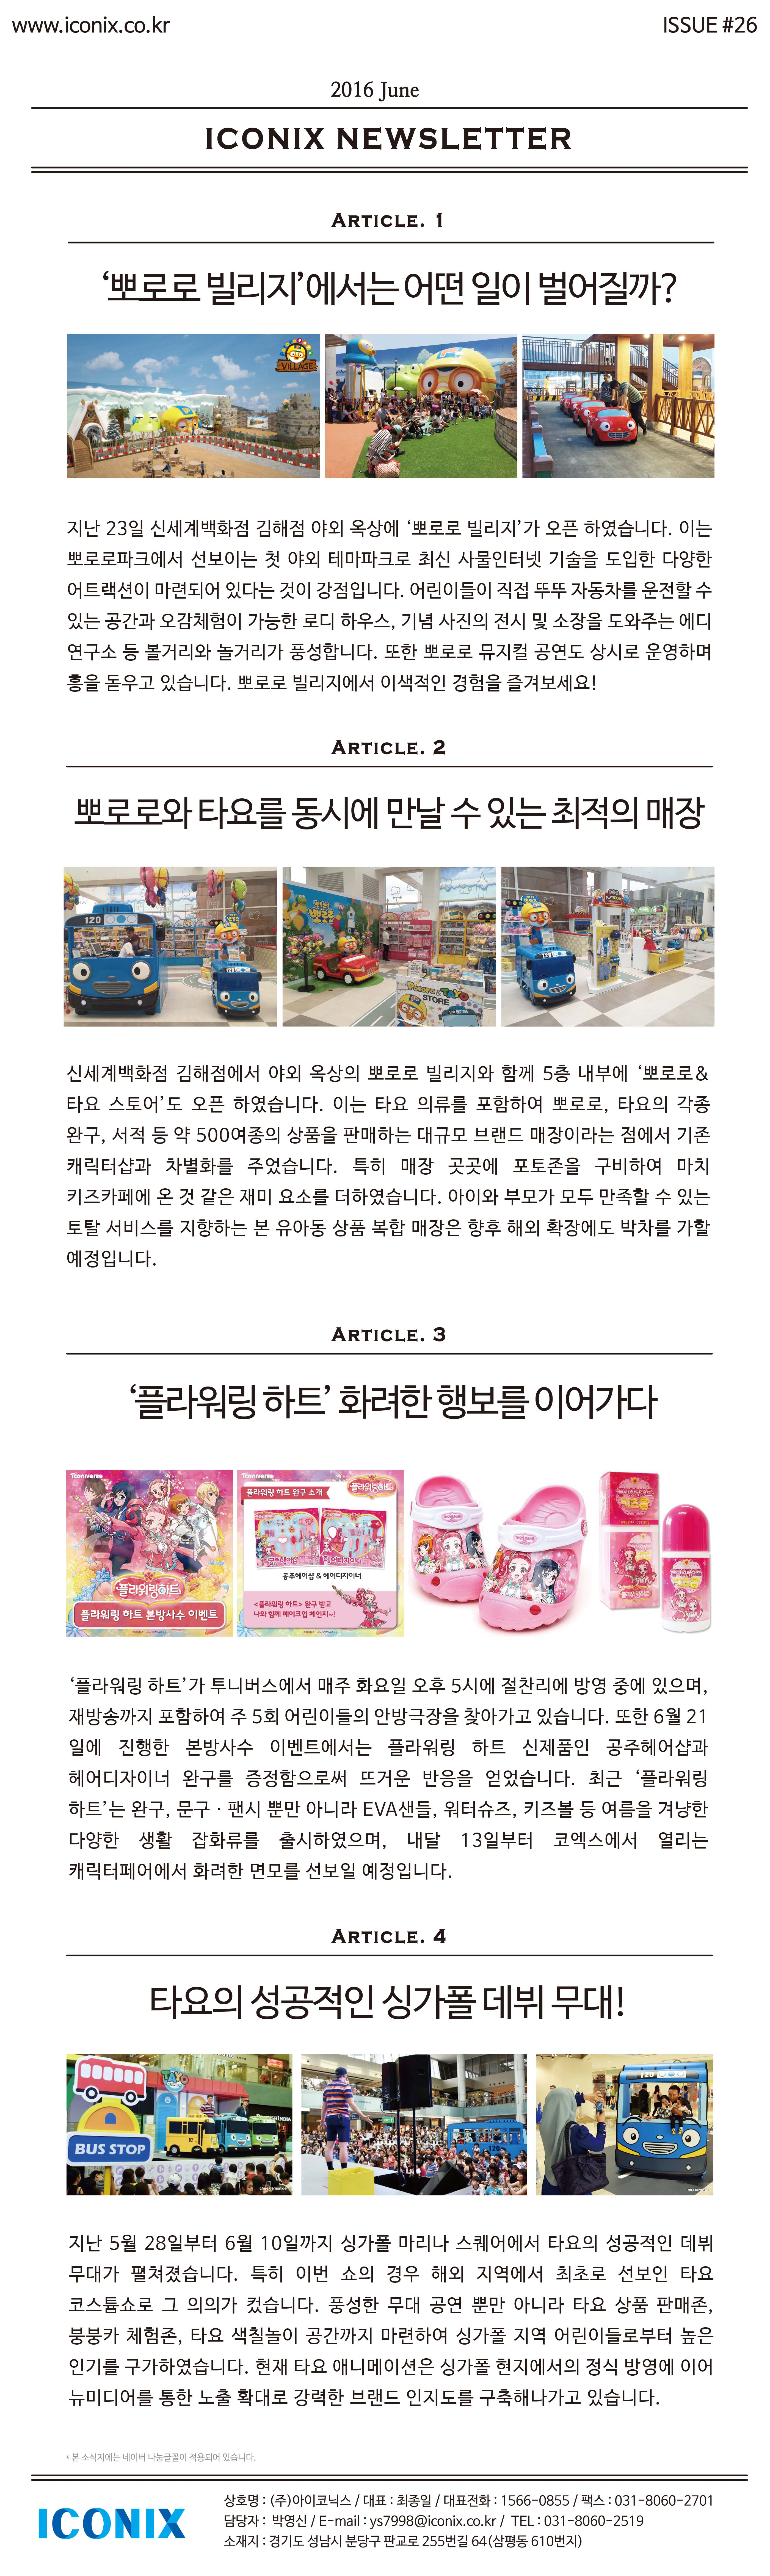 ICONIX_News Letter_1606.jpg